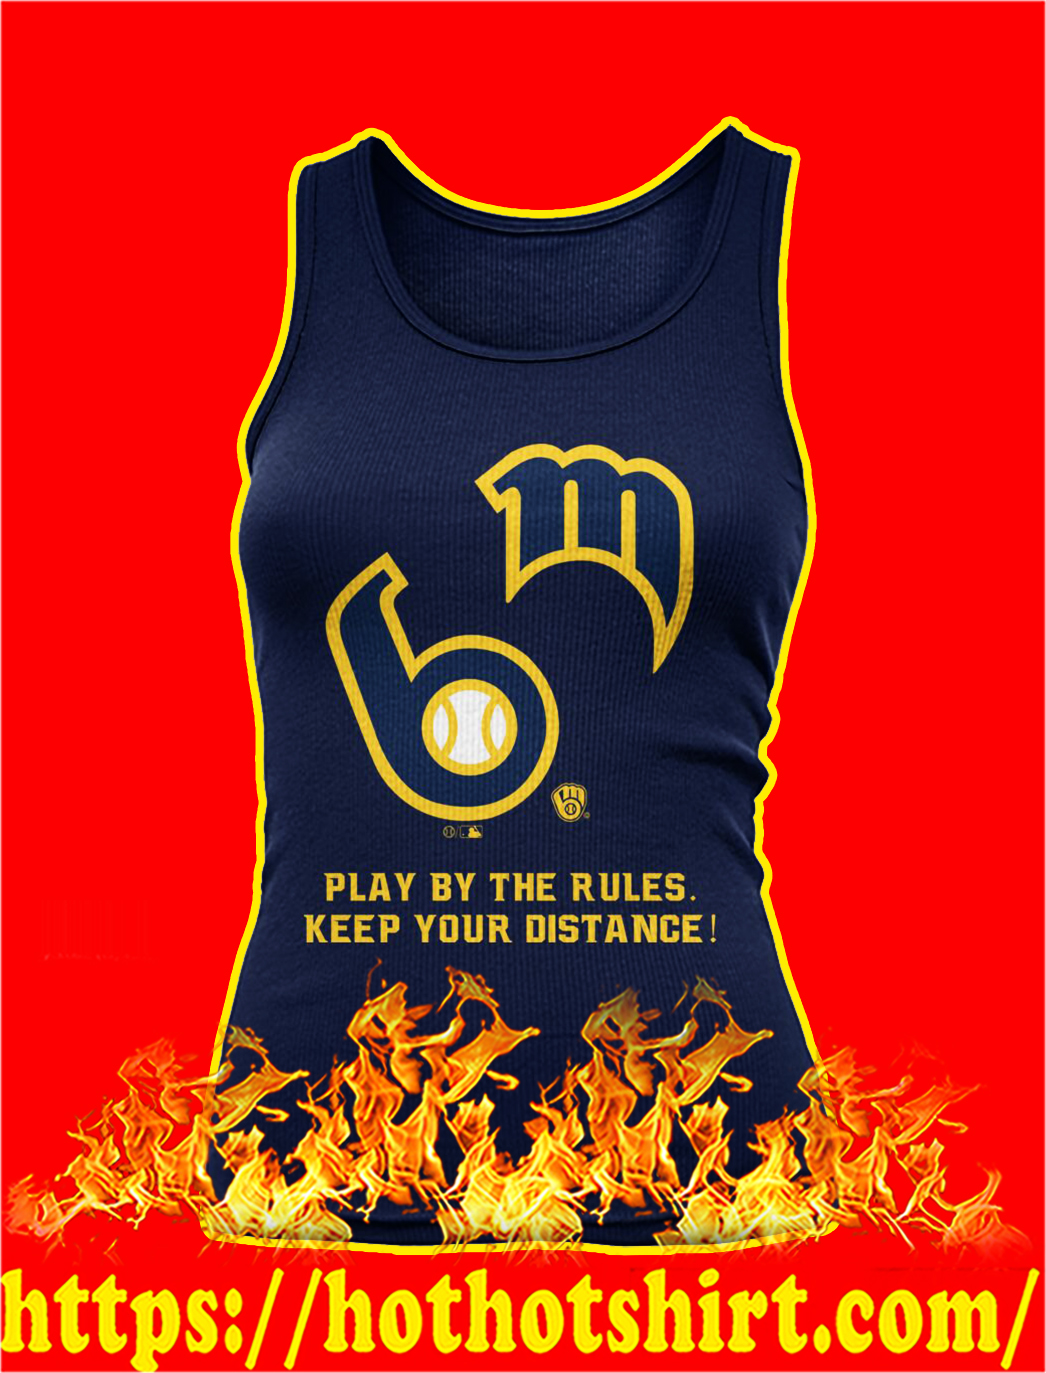 MLB play by the rules keep your distance tank top